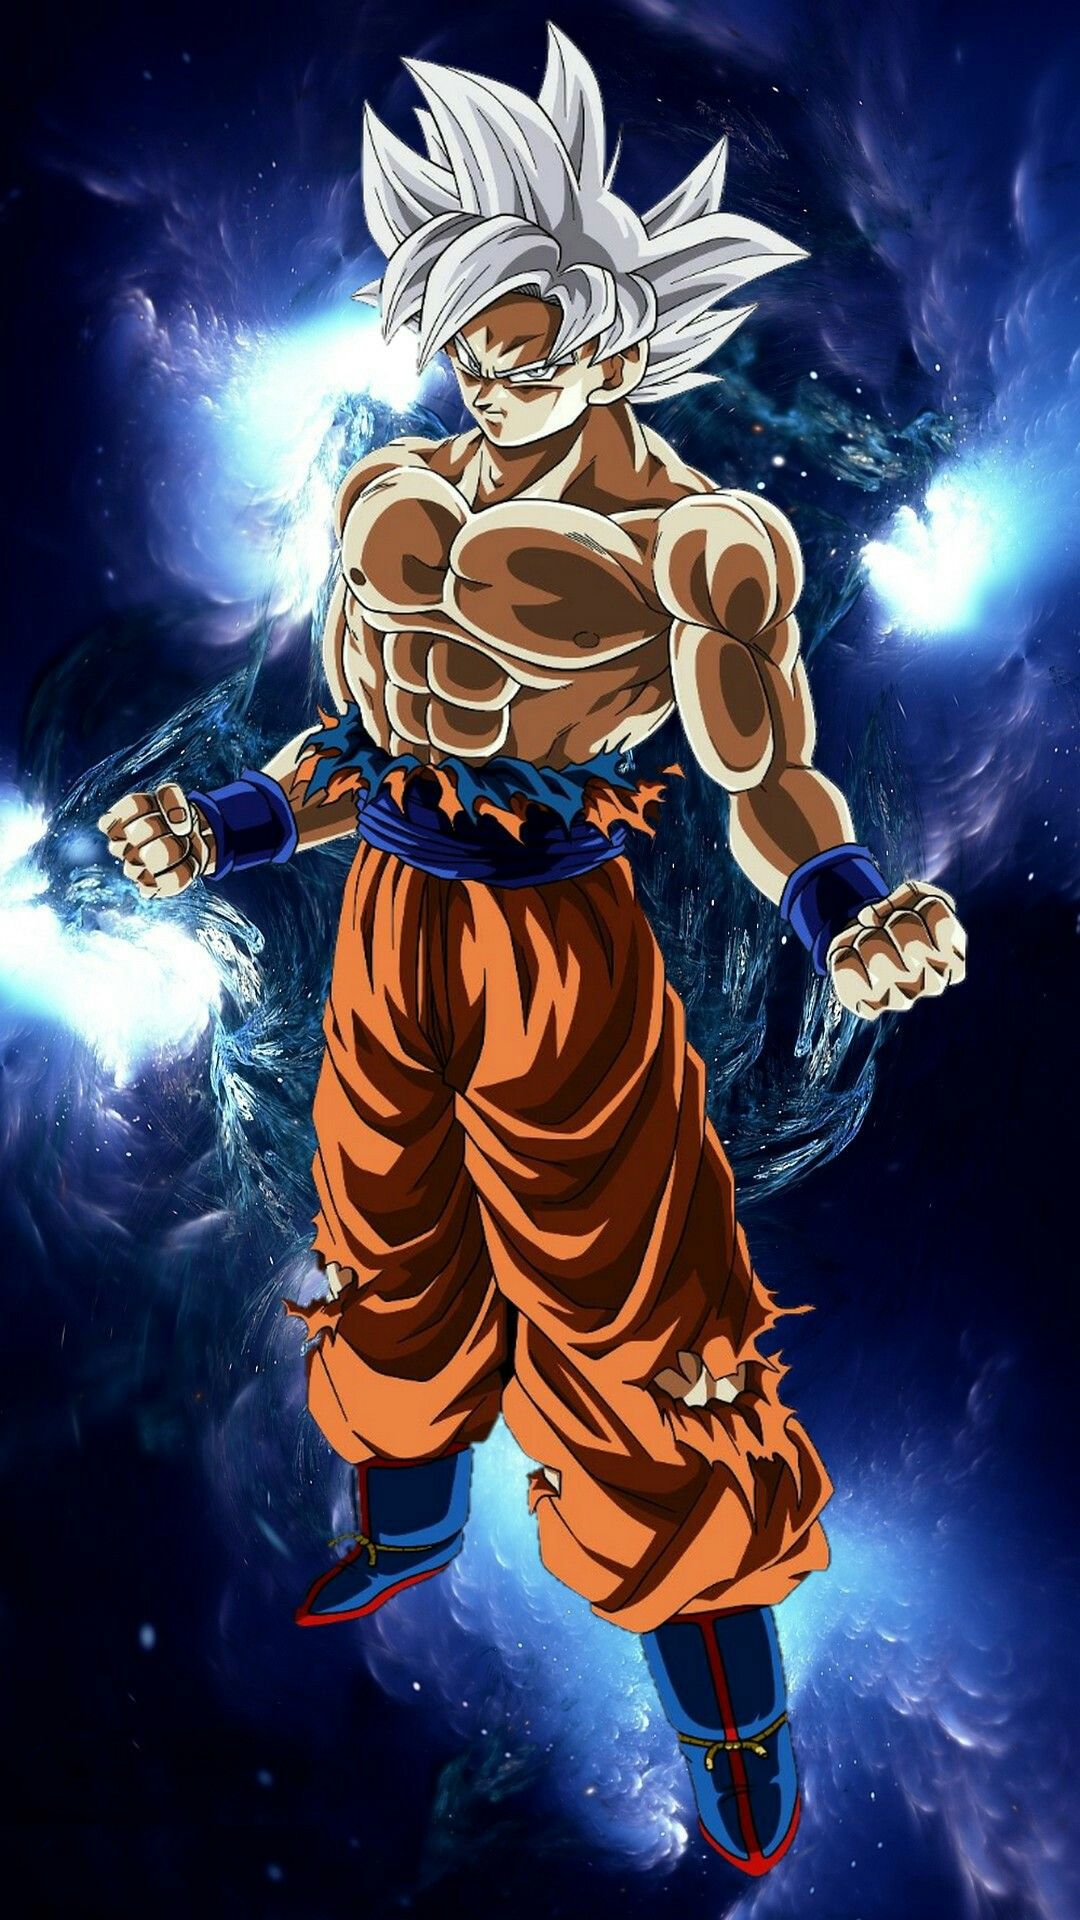 Dragon Ball Z Live Wallpaper For Android